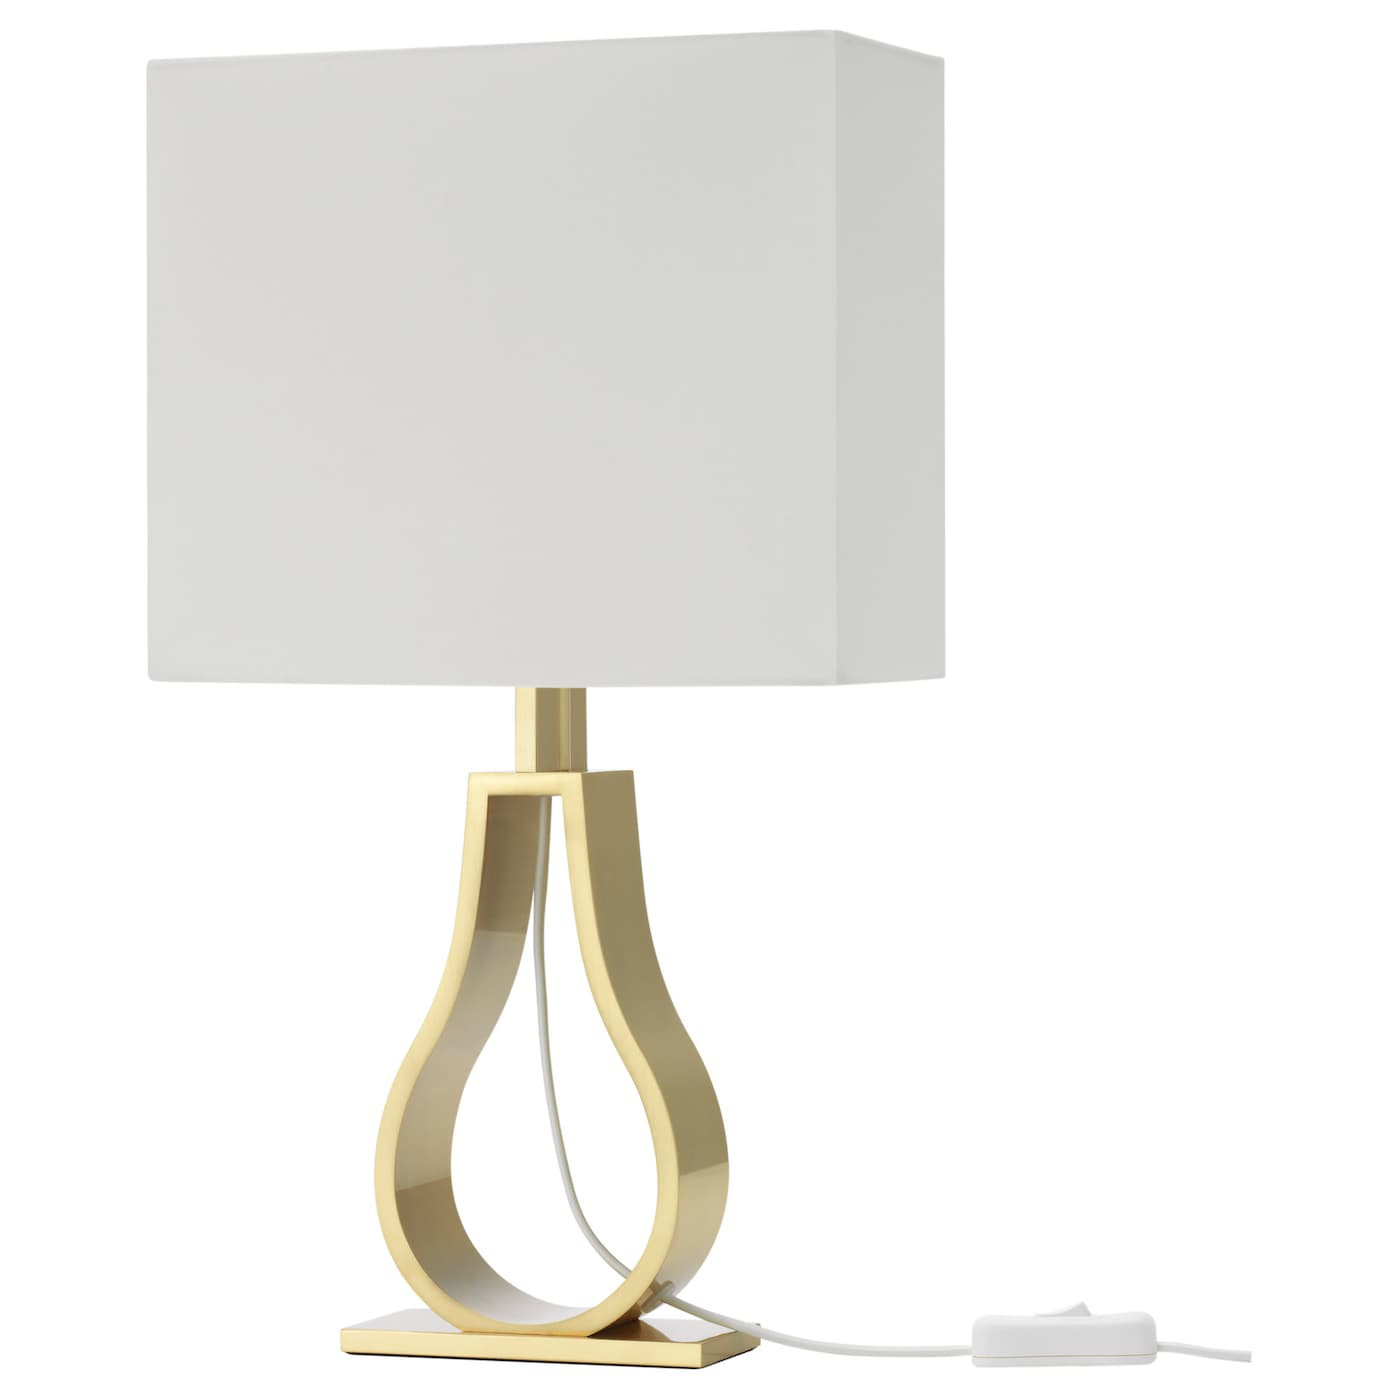 Table lamps bedside lamps ikea ireland - Lamparas pared ikea ...